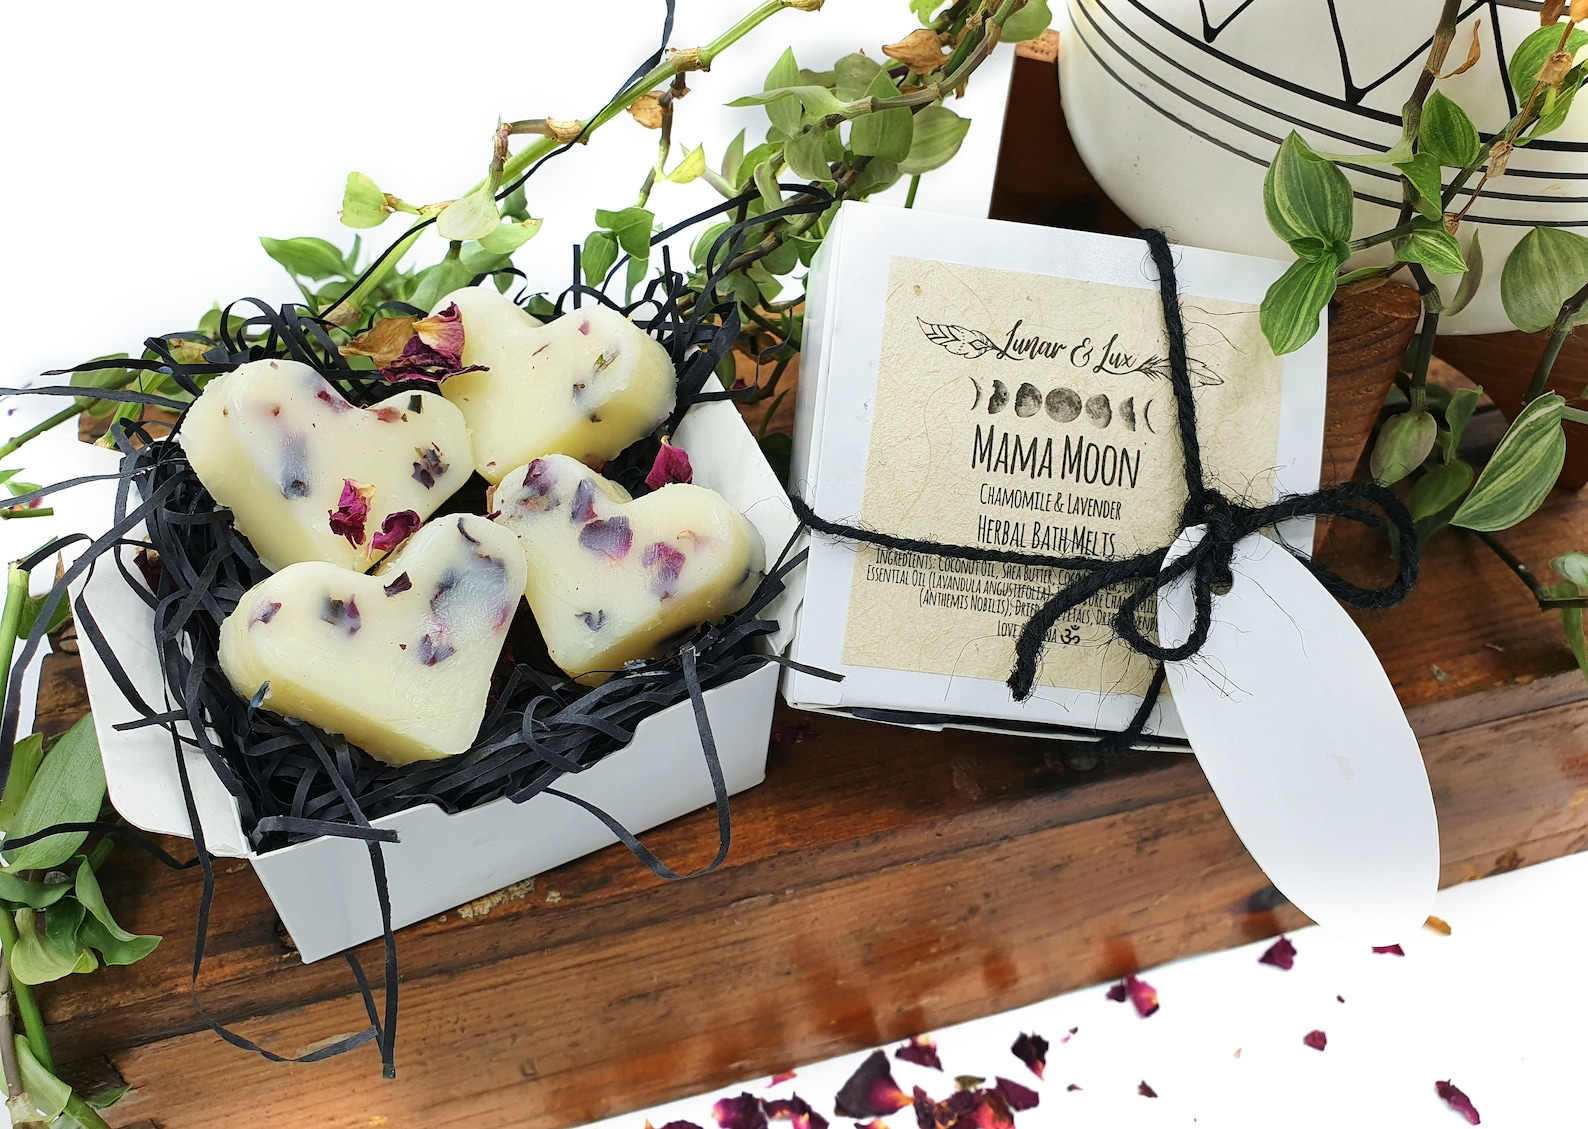 Vegan Bath Melts